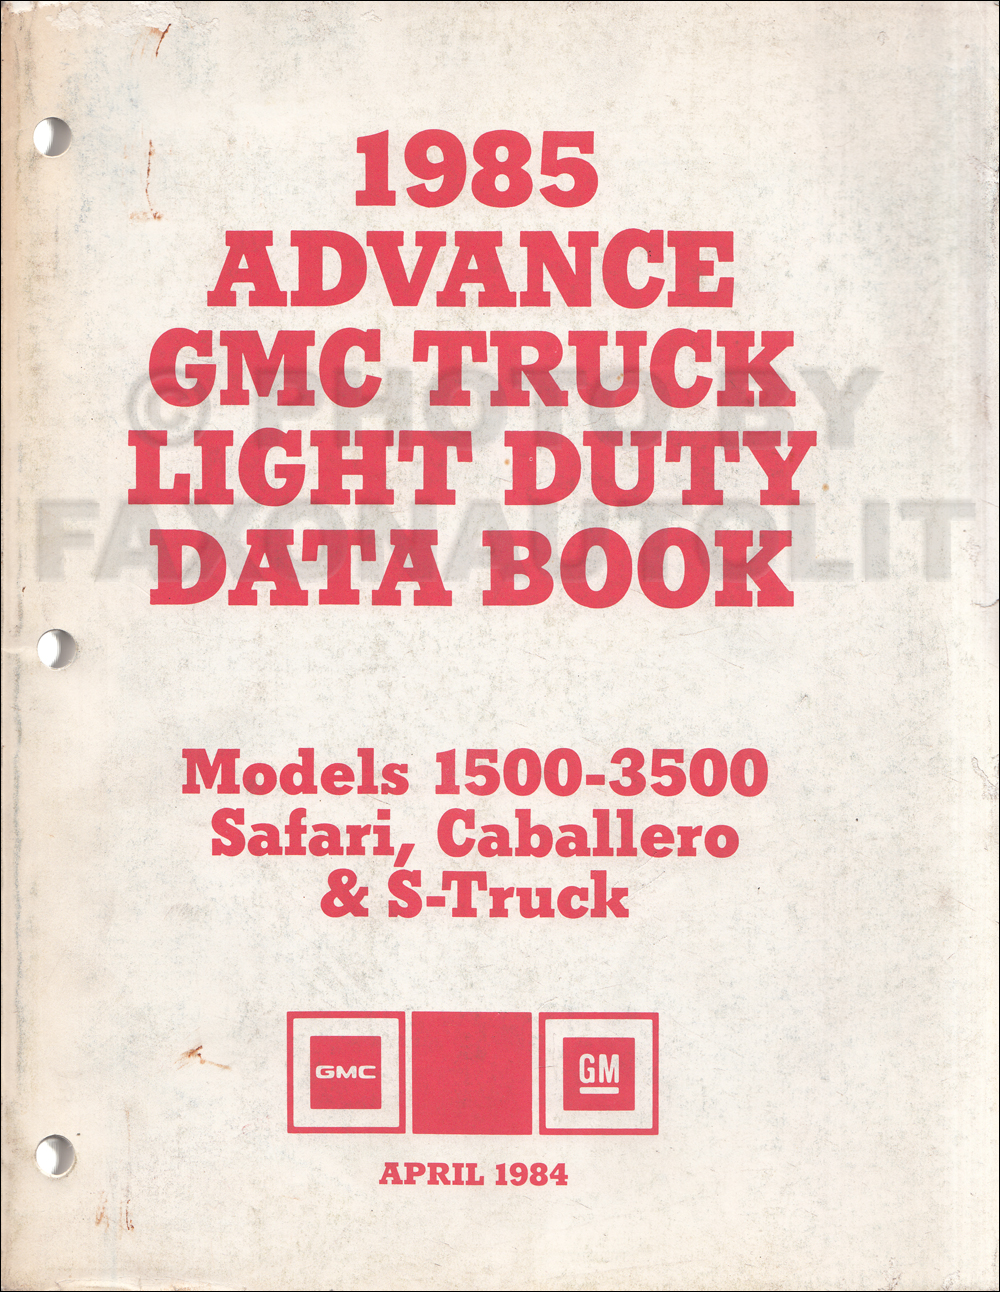 1985 GMC Advance Light Duty Data Book Original